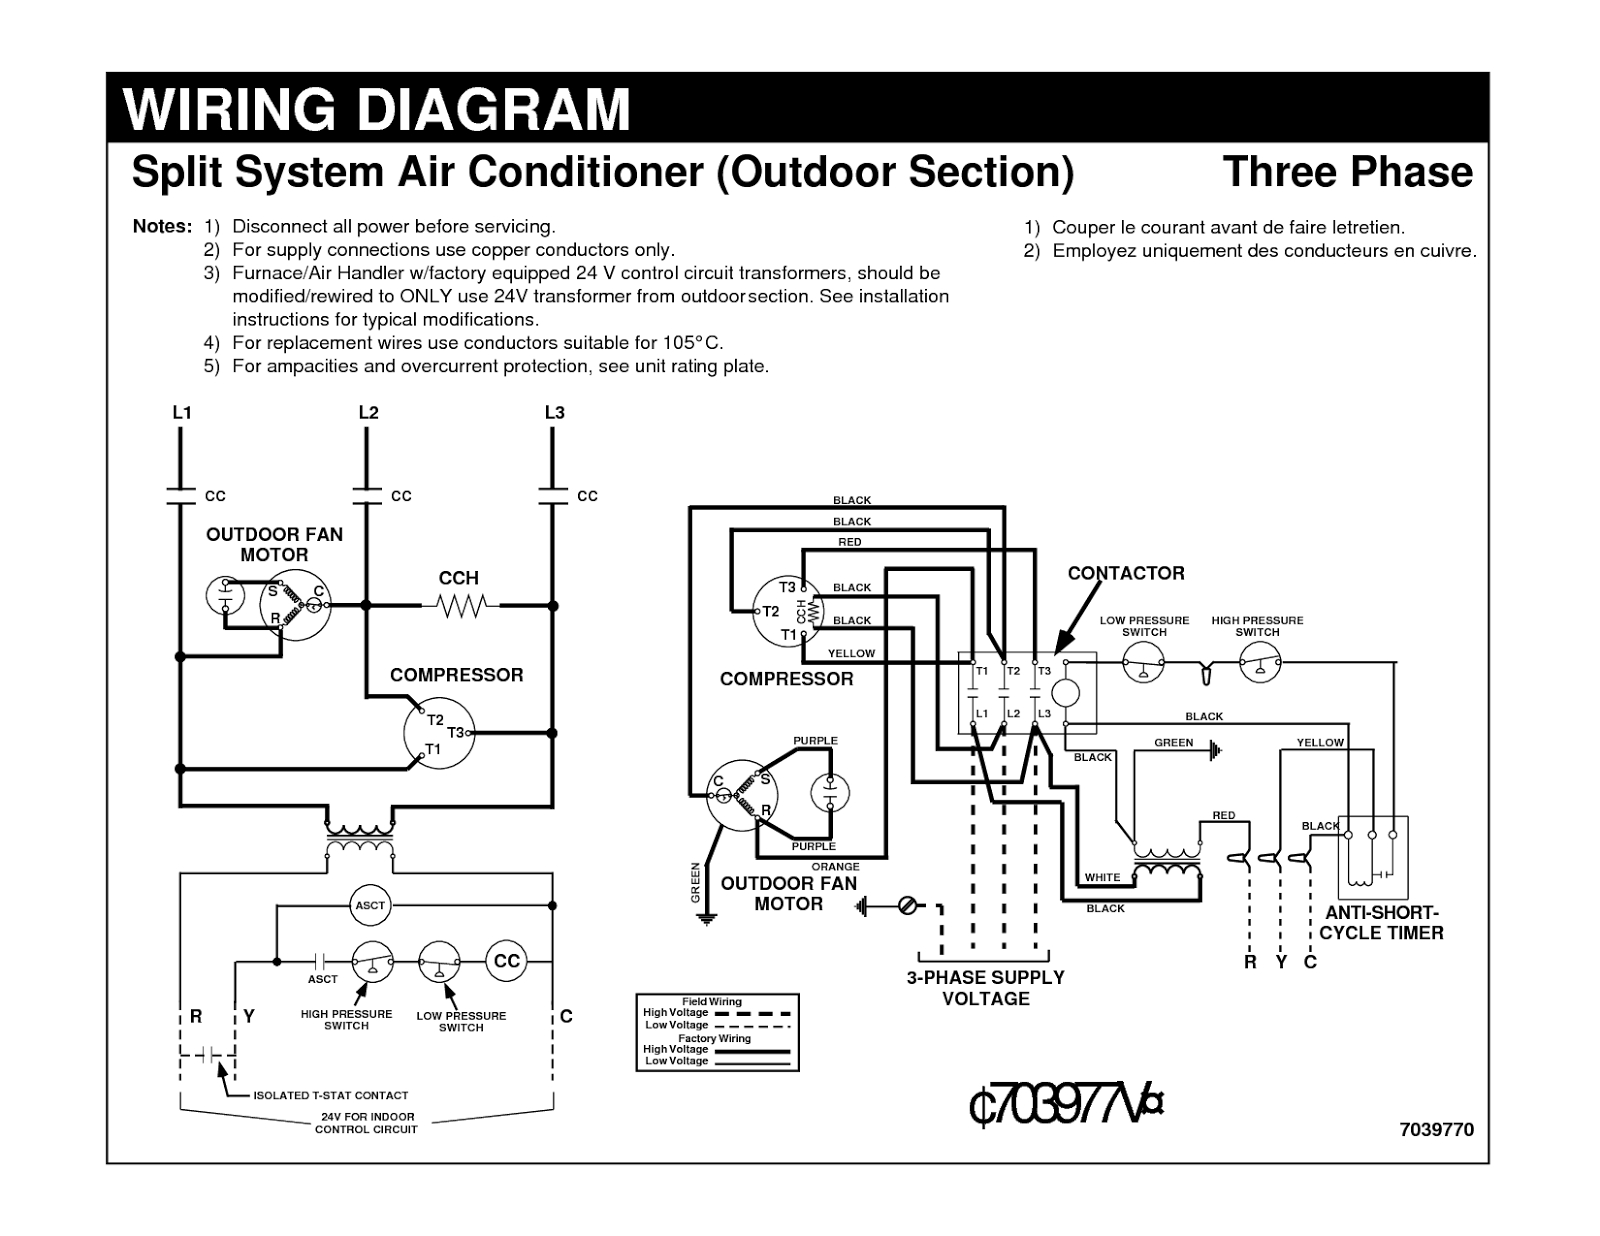 Ac Wire Diagram | Wiring Diagram - Ac Wiring Diagram Pdf